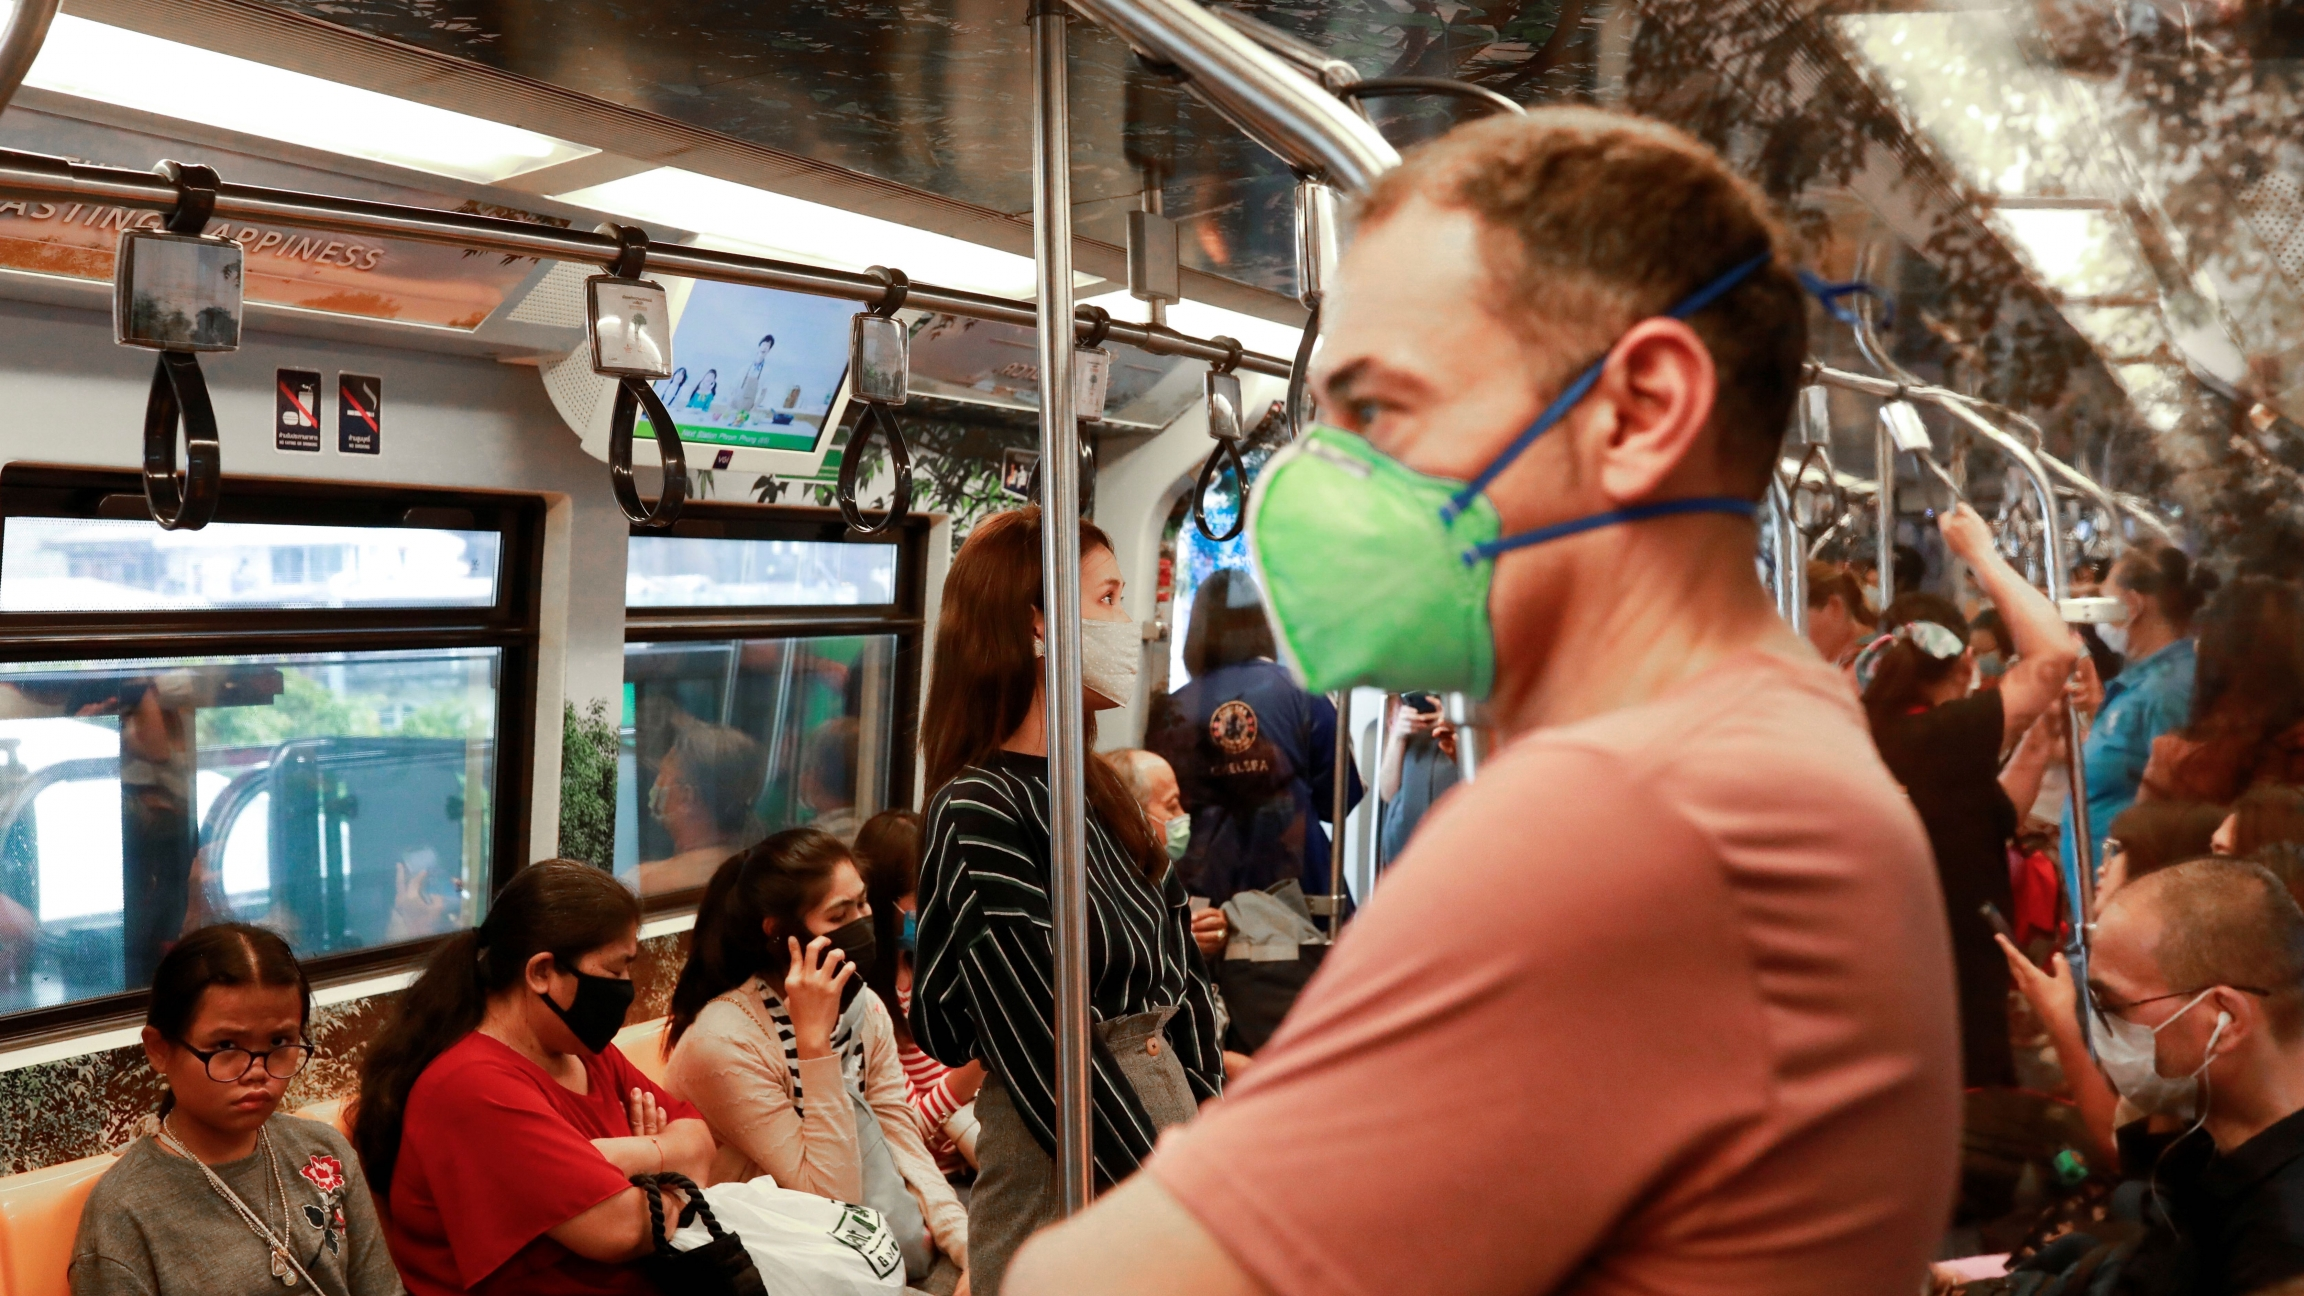 Passengers wear protective masks due to the coronavirus outbreak on a train in Bangkok, March 16, 2020.